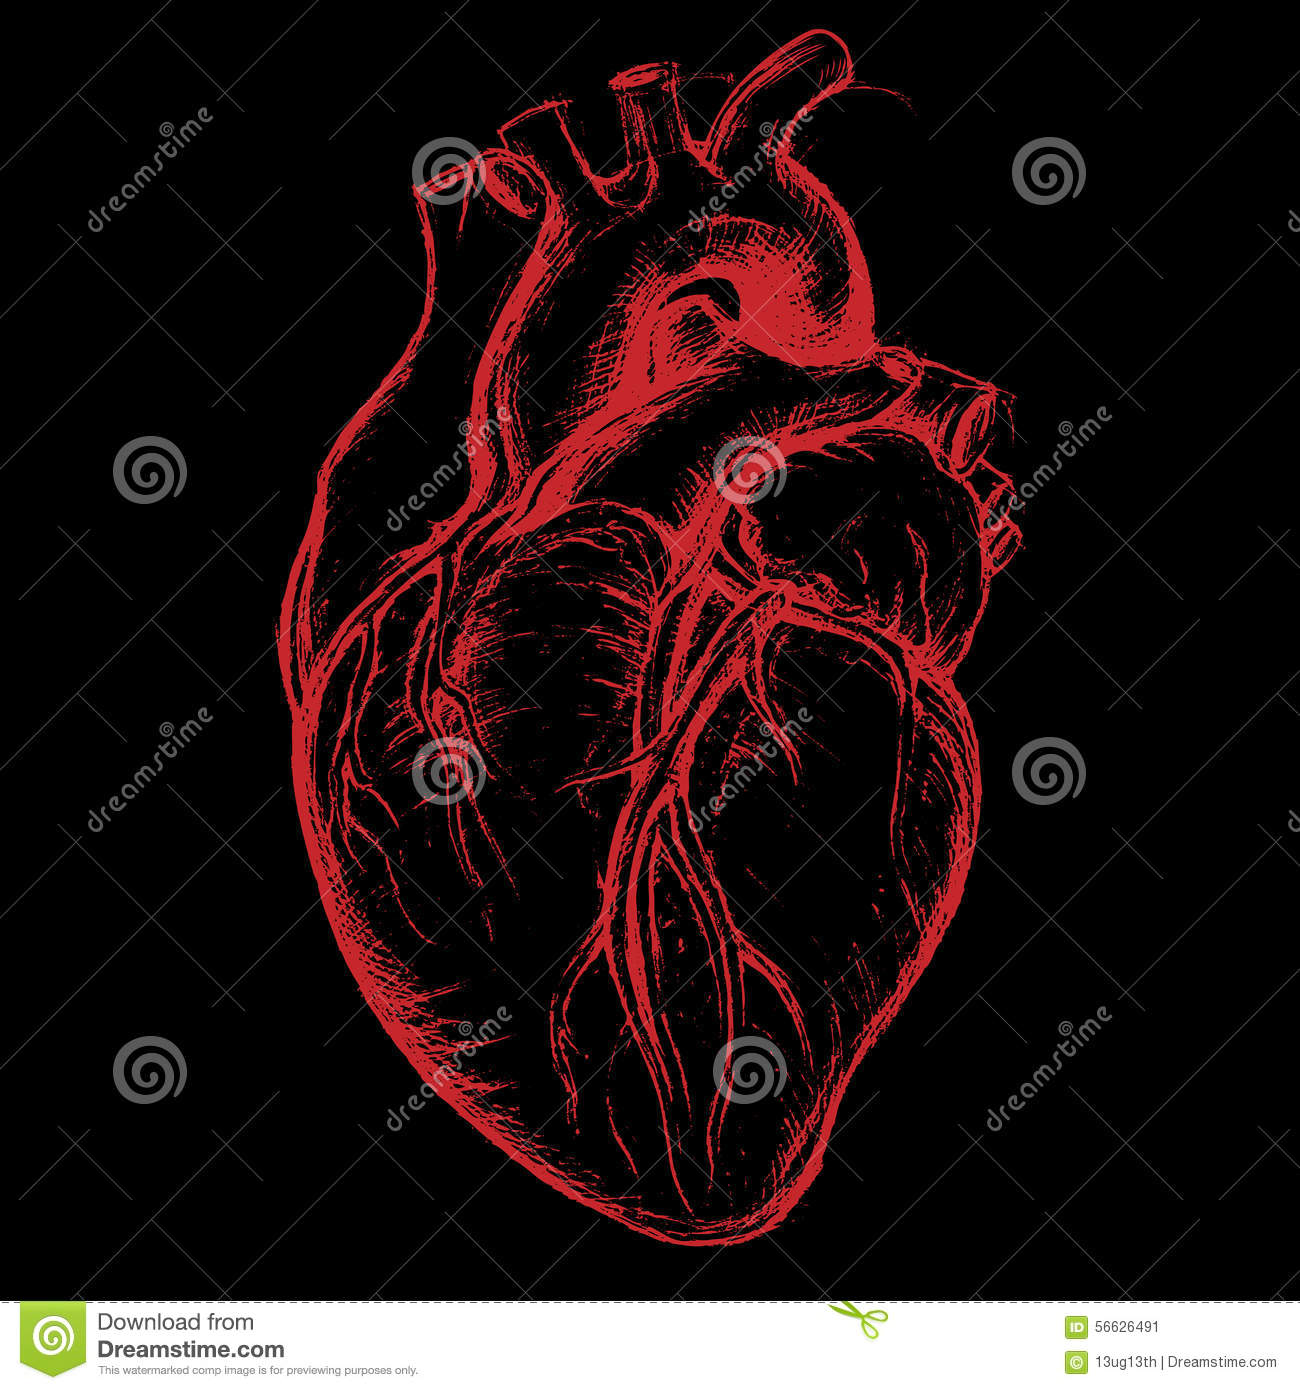 Drawing Lines Using Svg : Human heart drawing stock vector illustration of hospital